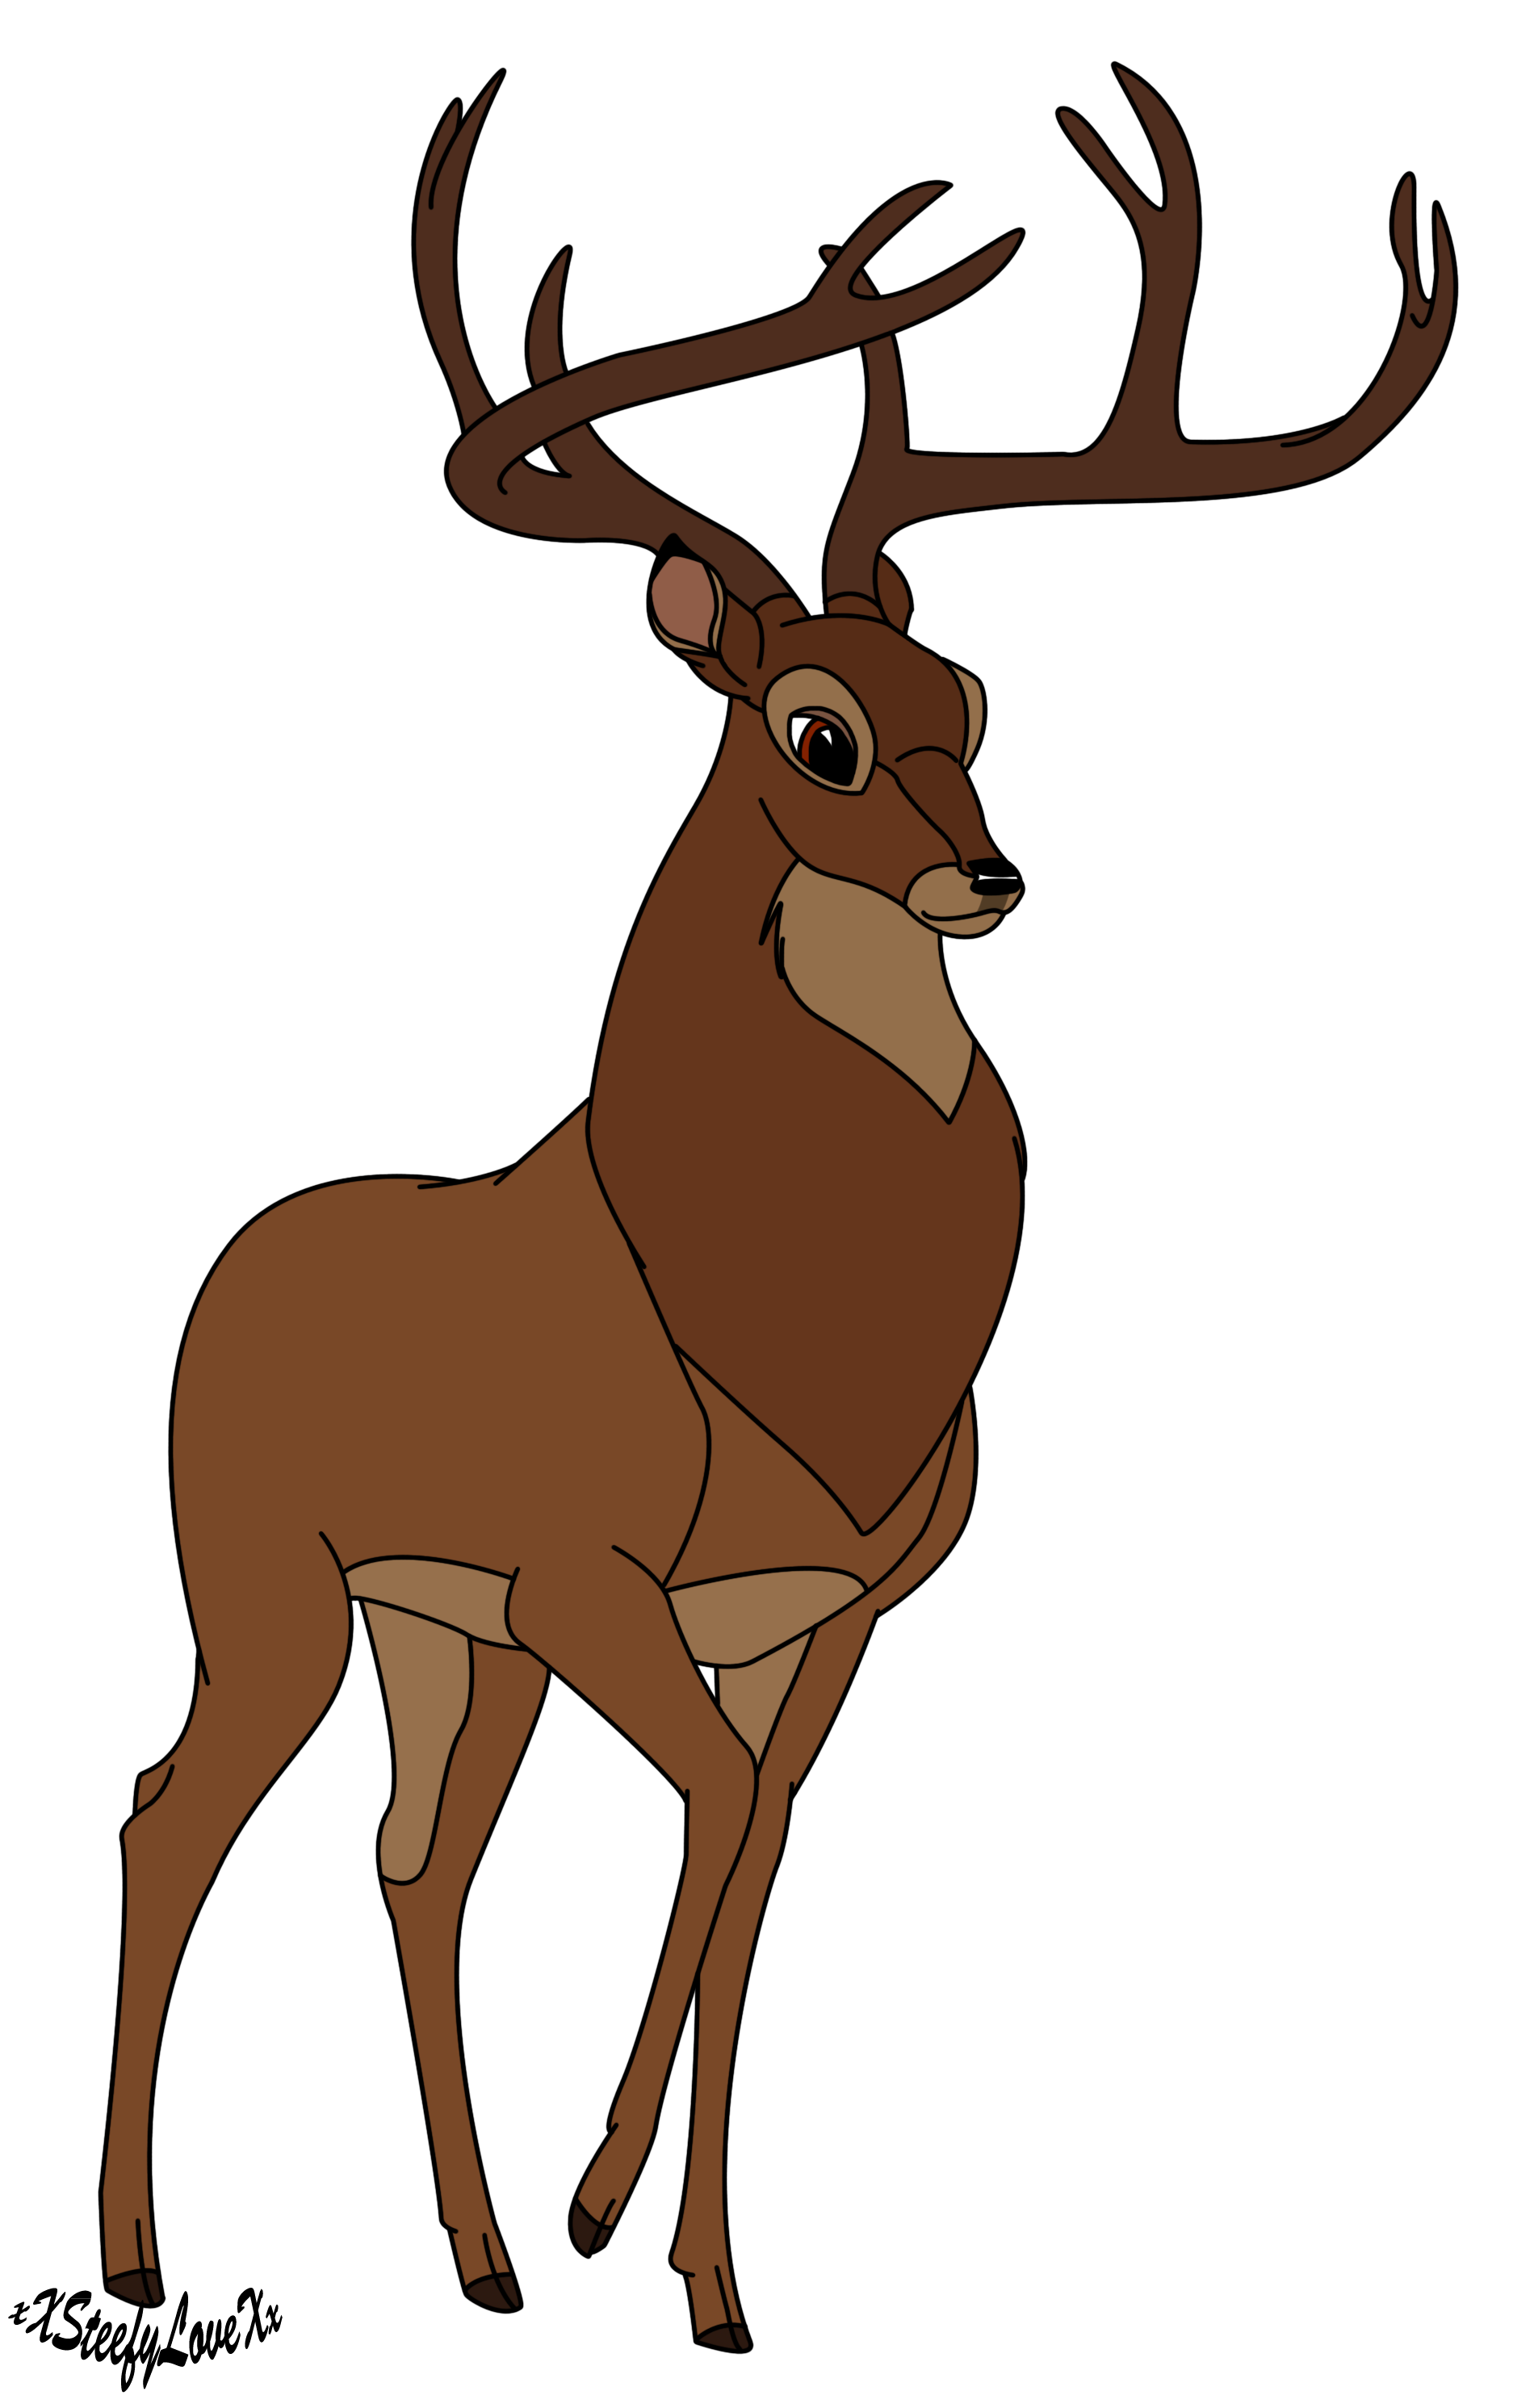 Deer clipart love. Free png transparent background